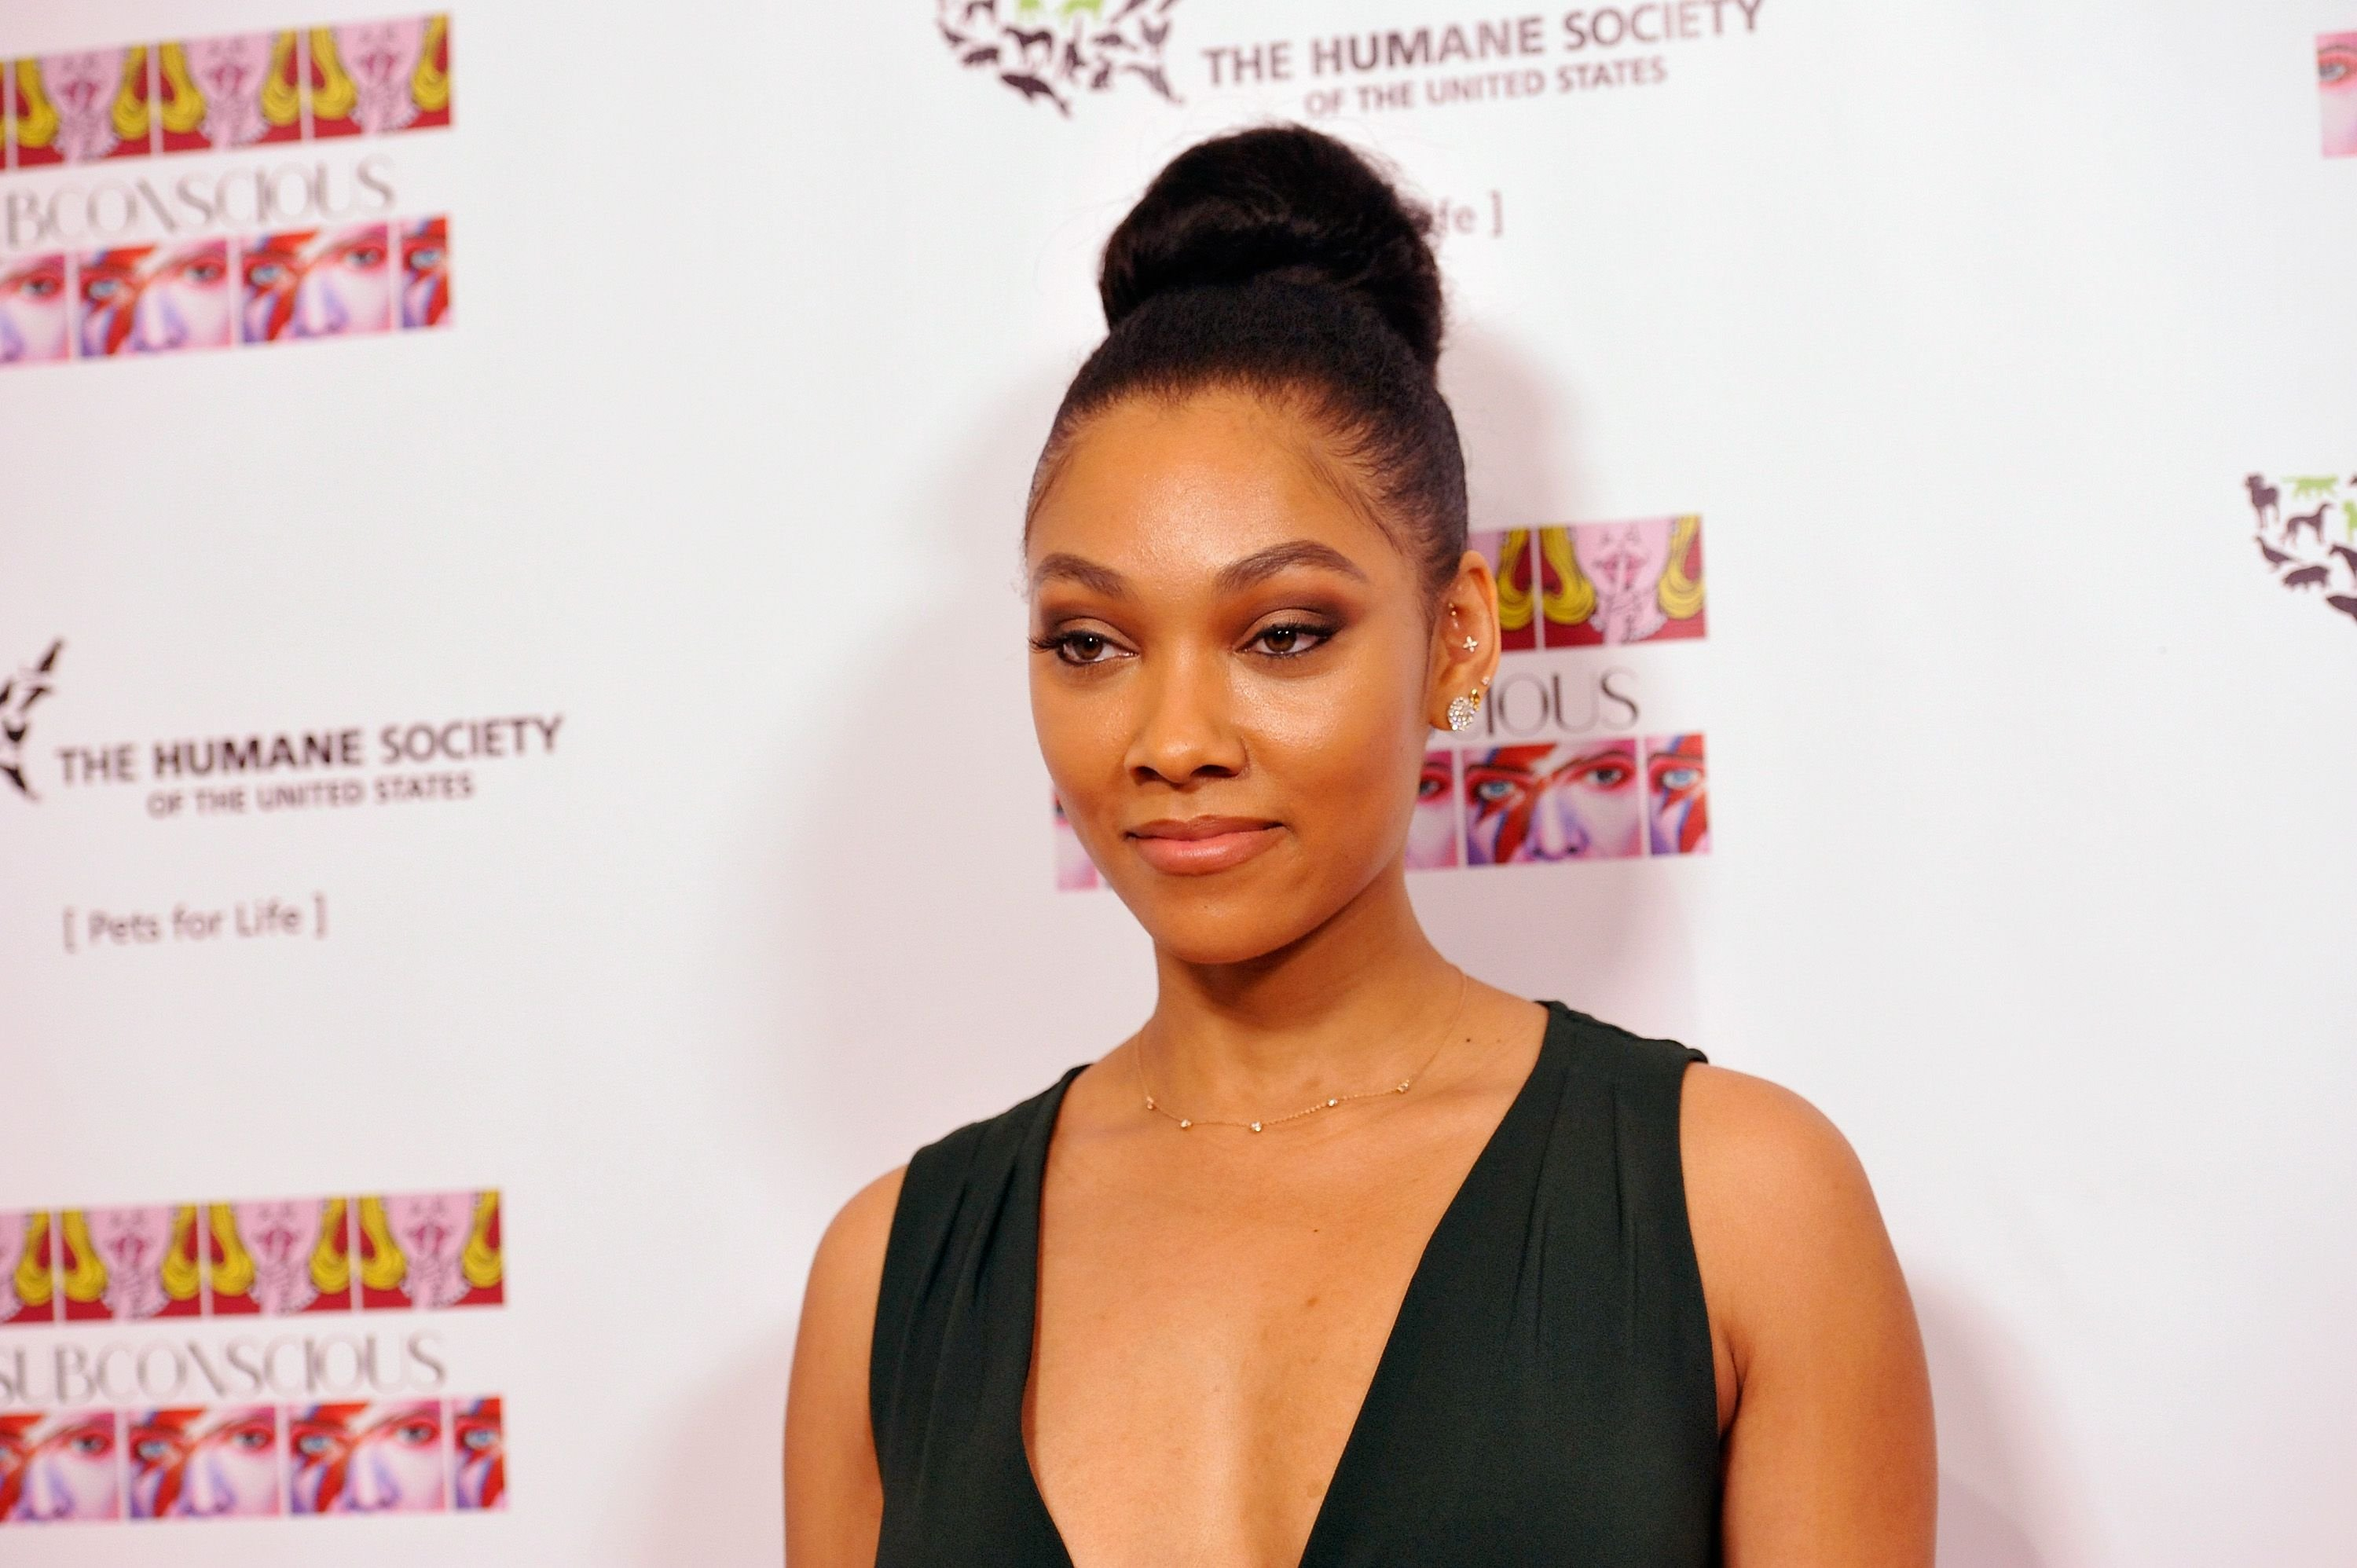 """Bria Murphy during the debut gallery opening of her art show, """"Subconscious,"""" benefiting the Pets for Life Program for The Humane Society at Los Angeles Contemporary Exhibitions on November 20, 2016 in Los Angeles, California. 